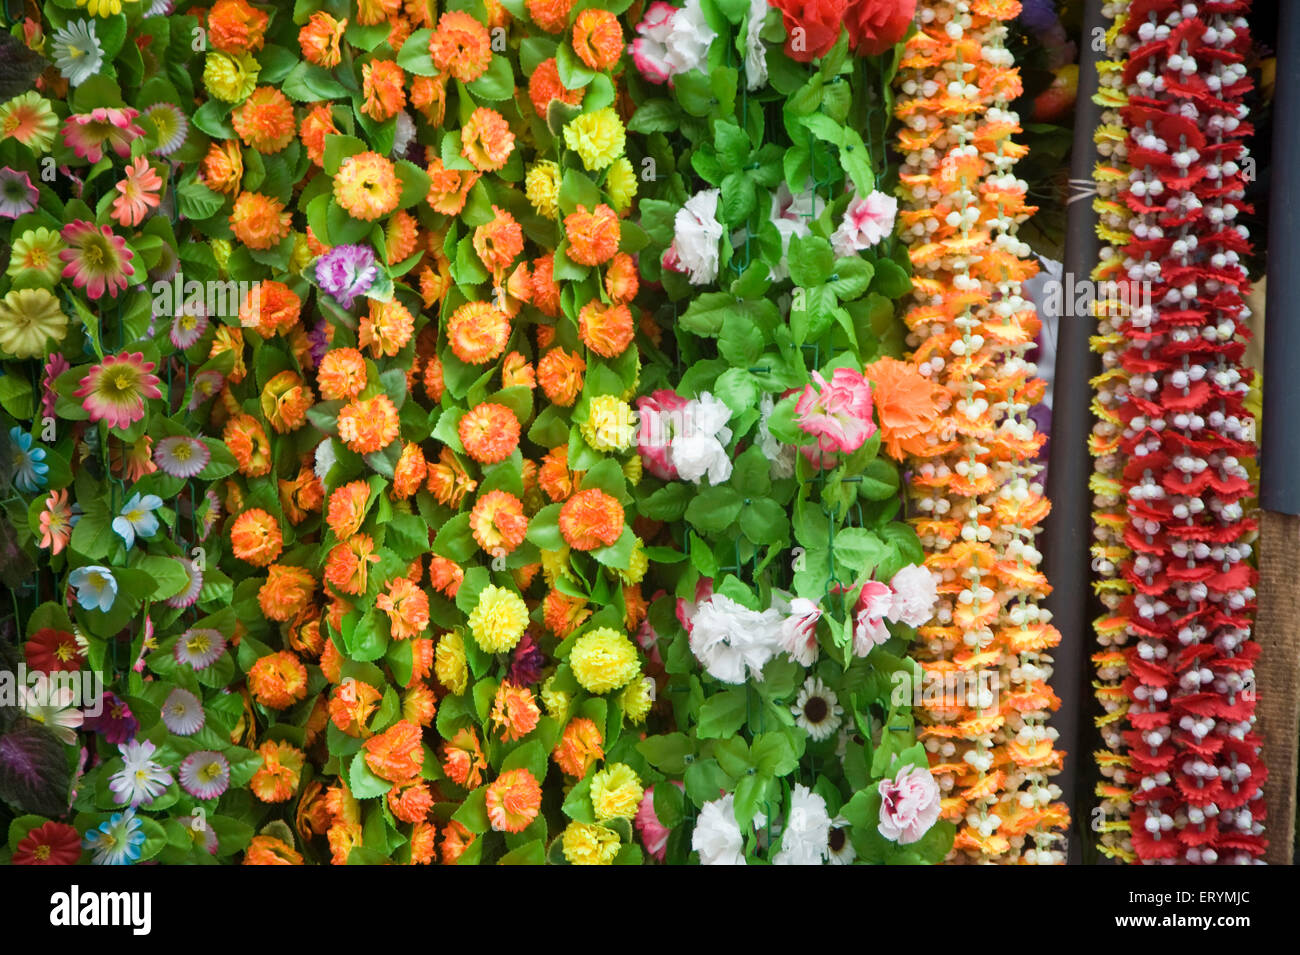 Flower Markets In Asia Stock Photos Flower Markets In Asia Stock